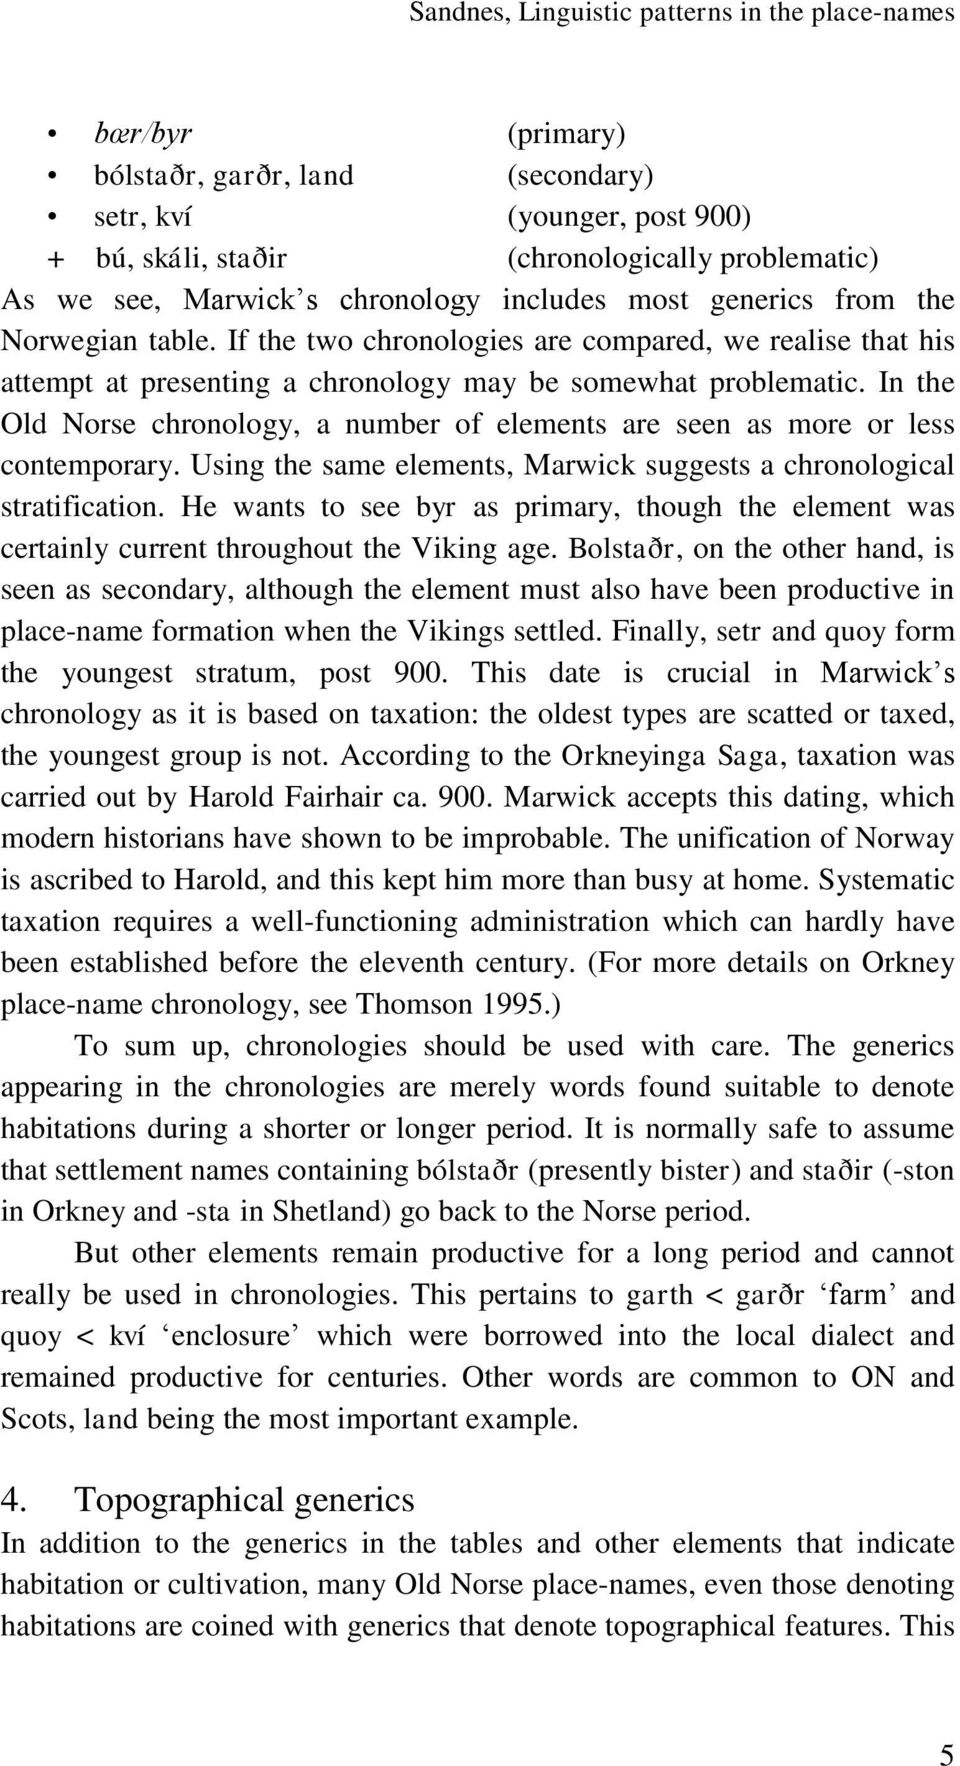 In the Old Norse chronology, a number of elements are seen as more or less contemporary. Using the same elements, Marwick suggests a chronological stratification.